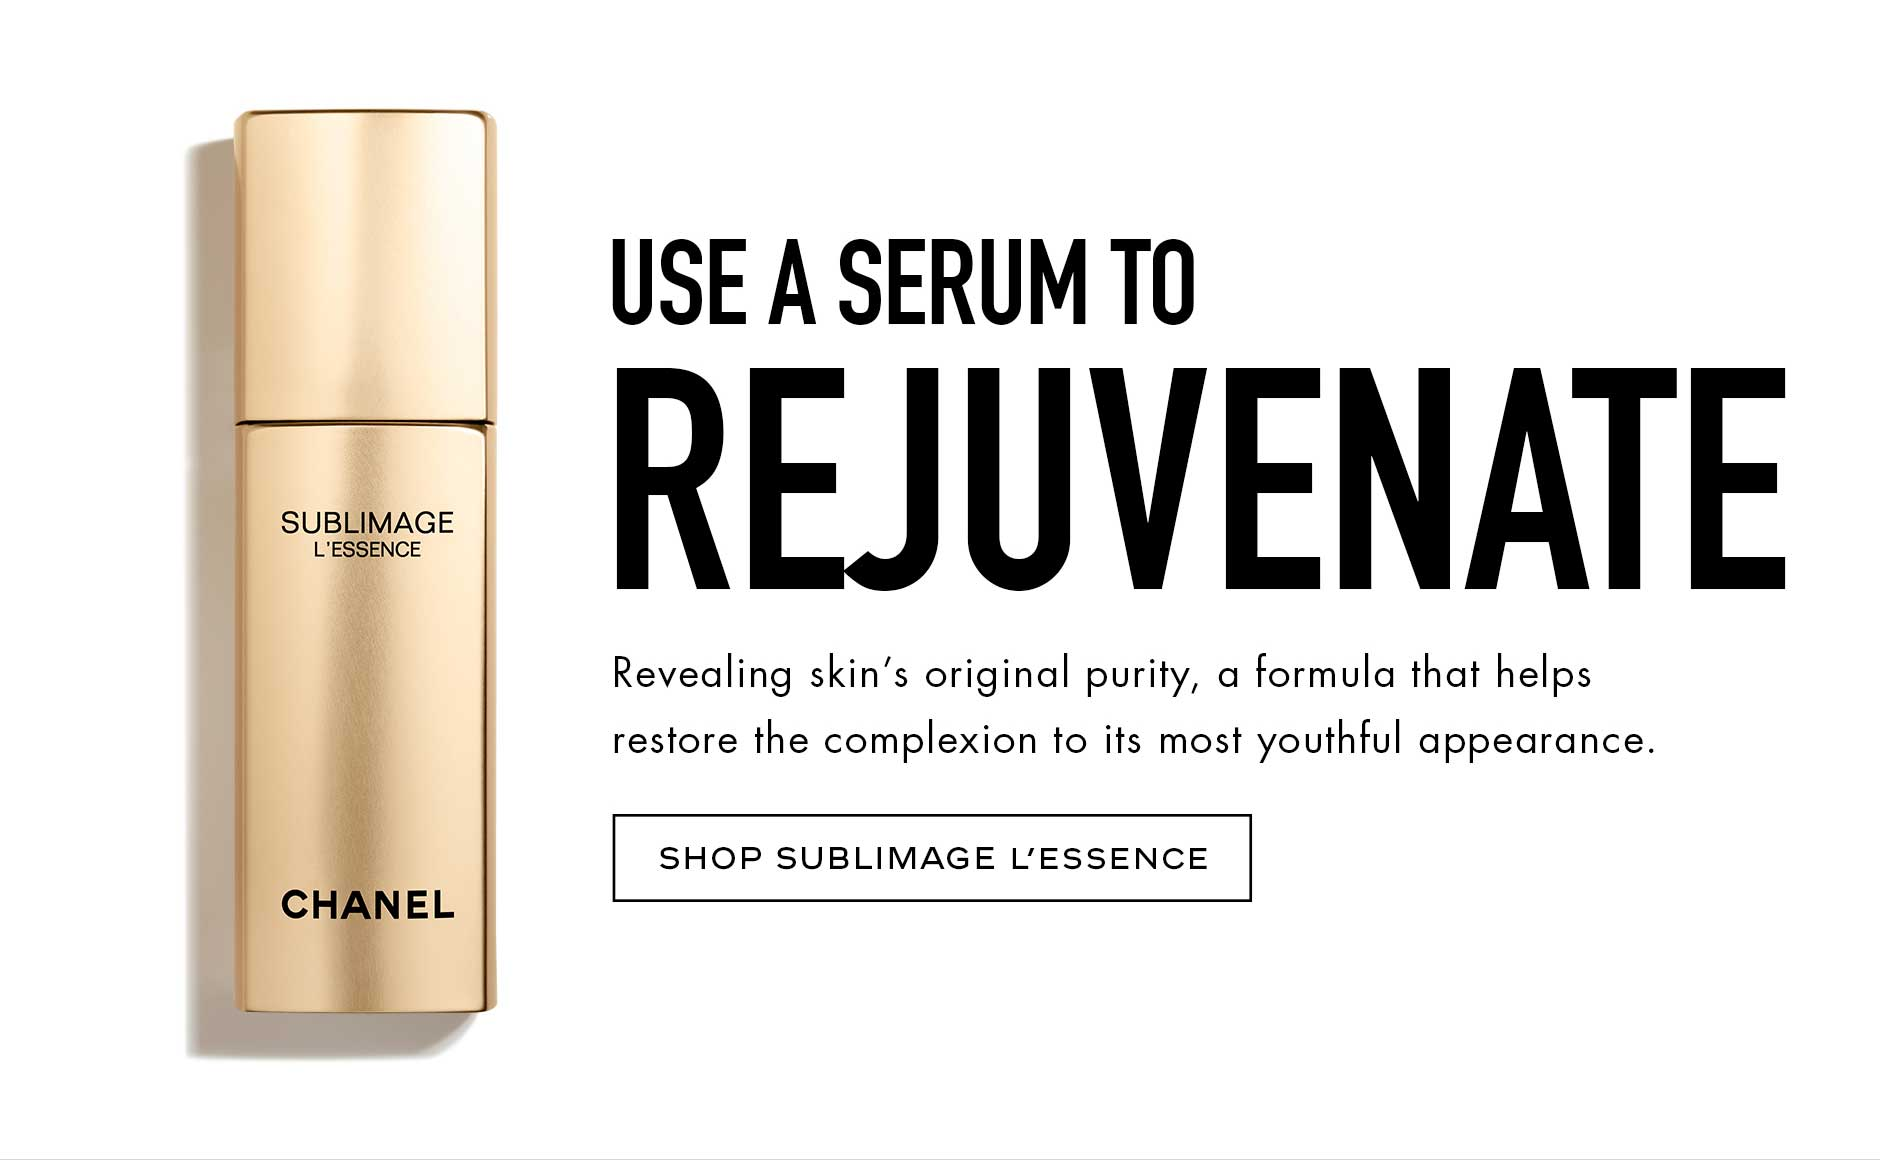 Use a serum to rejuvenate - Revealing skin's original purity, a formula that helps restore the complexion to its most youthful appearance.